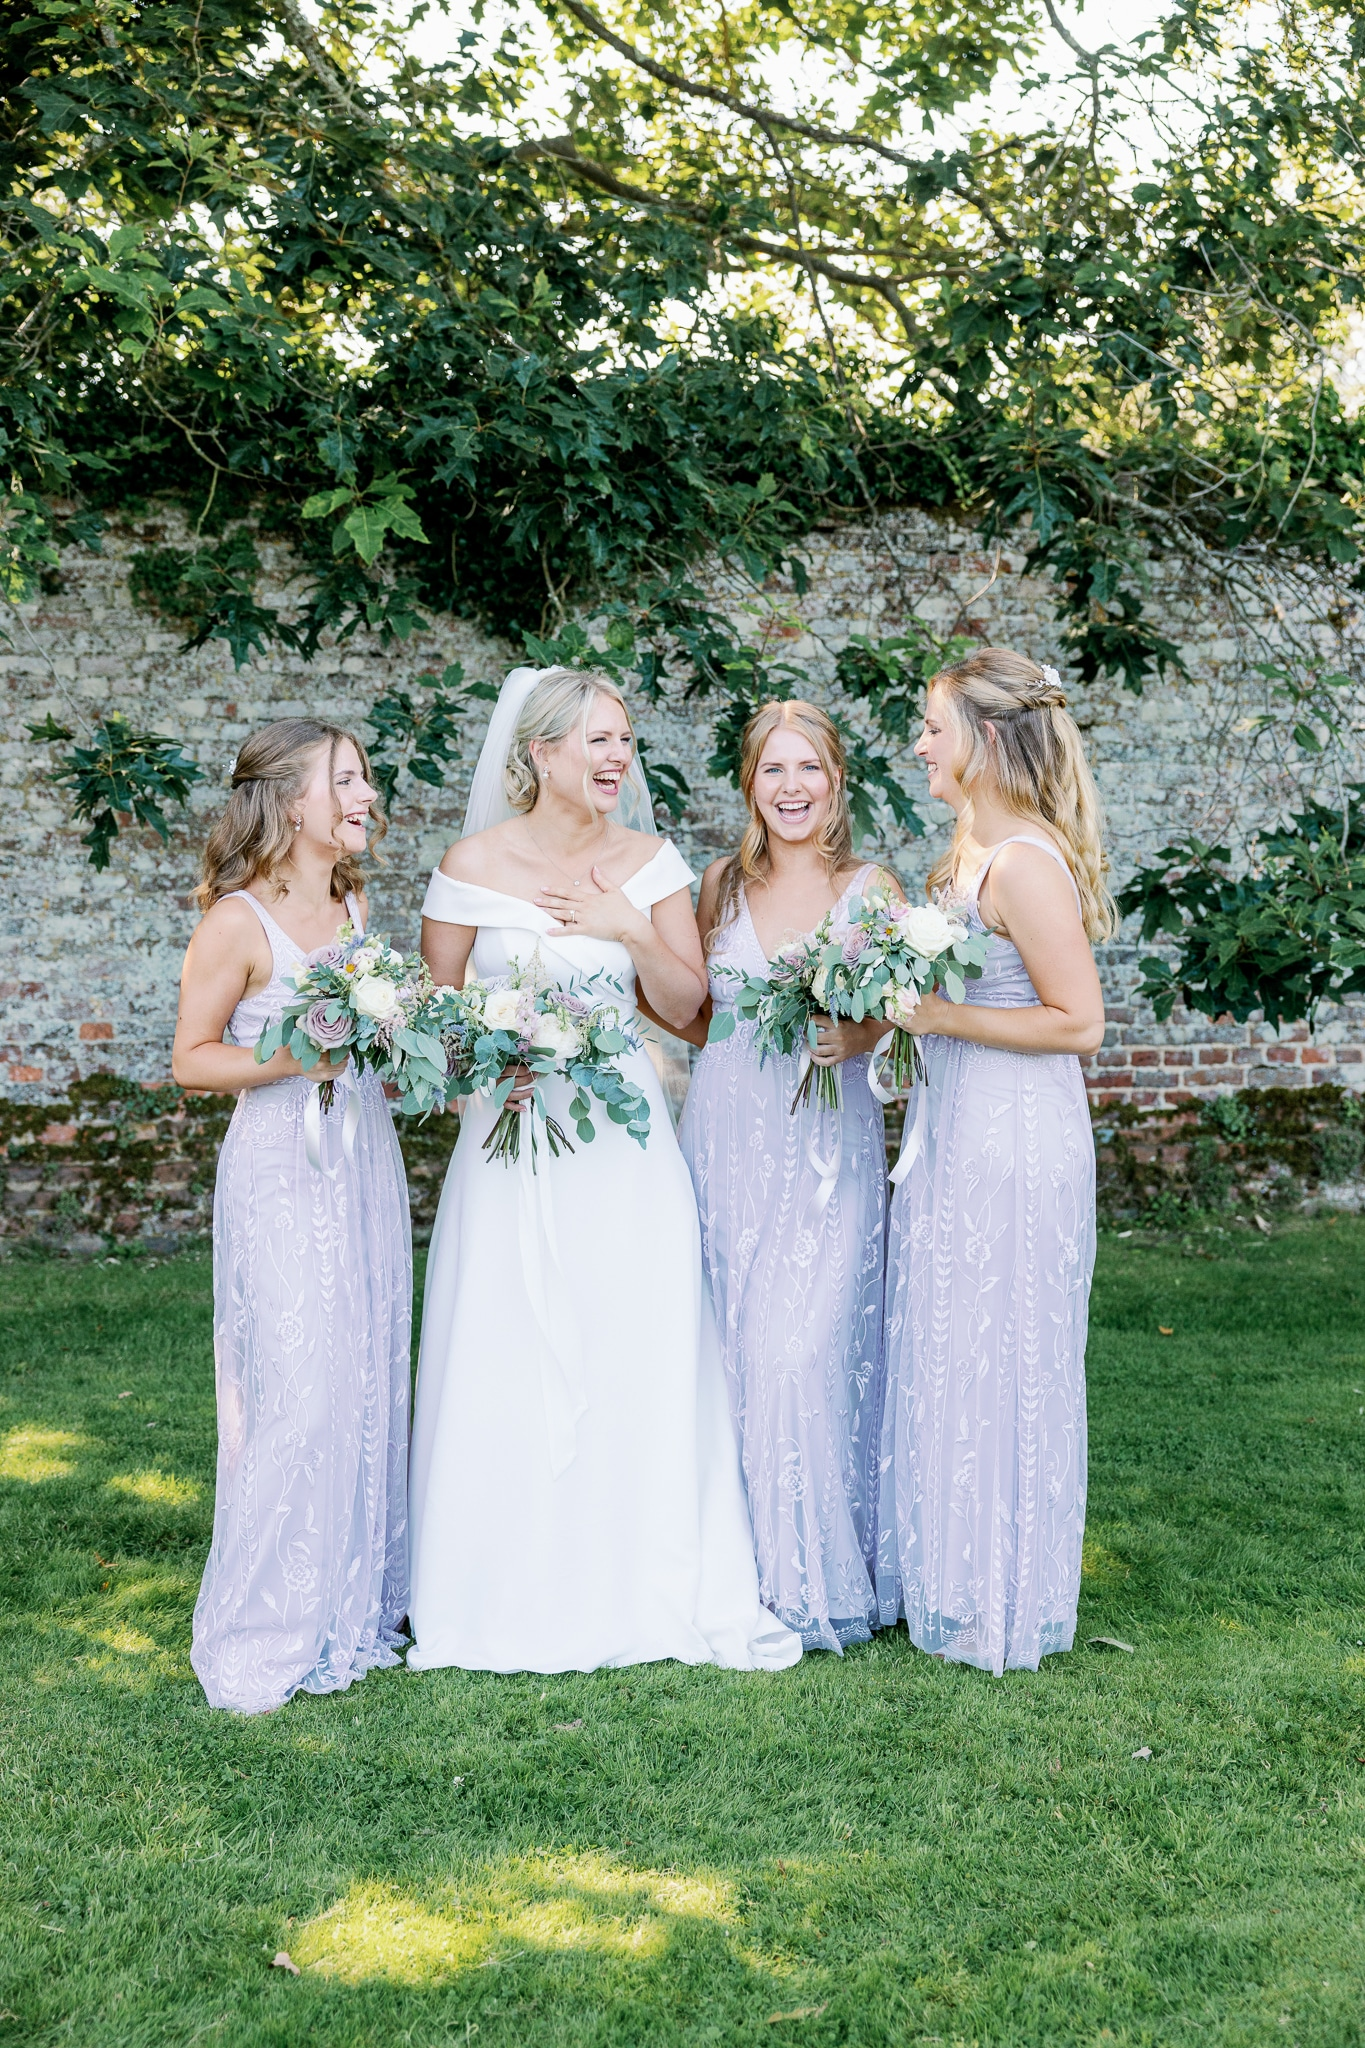 Bridal party at Brickwall House wedding venue in Hastings